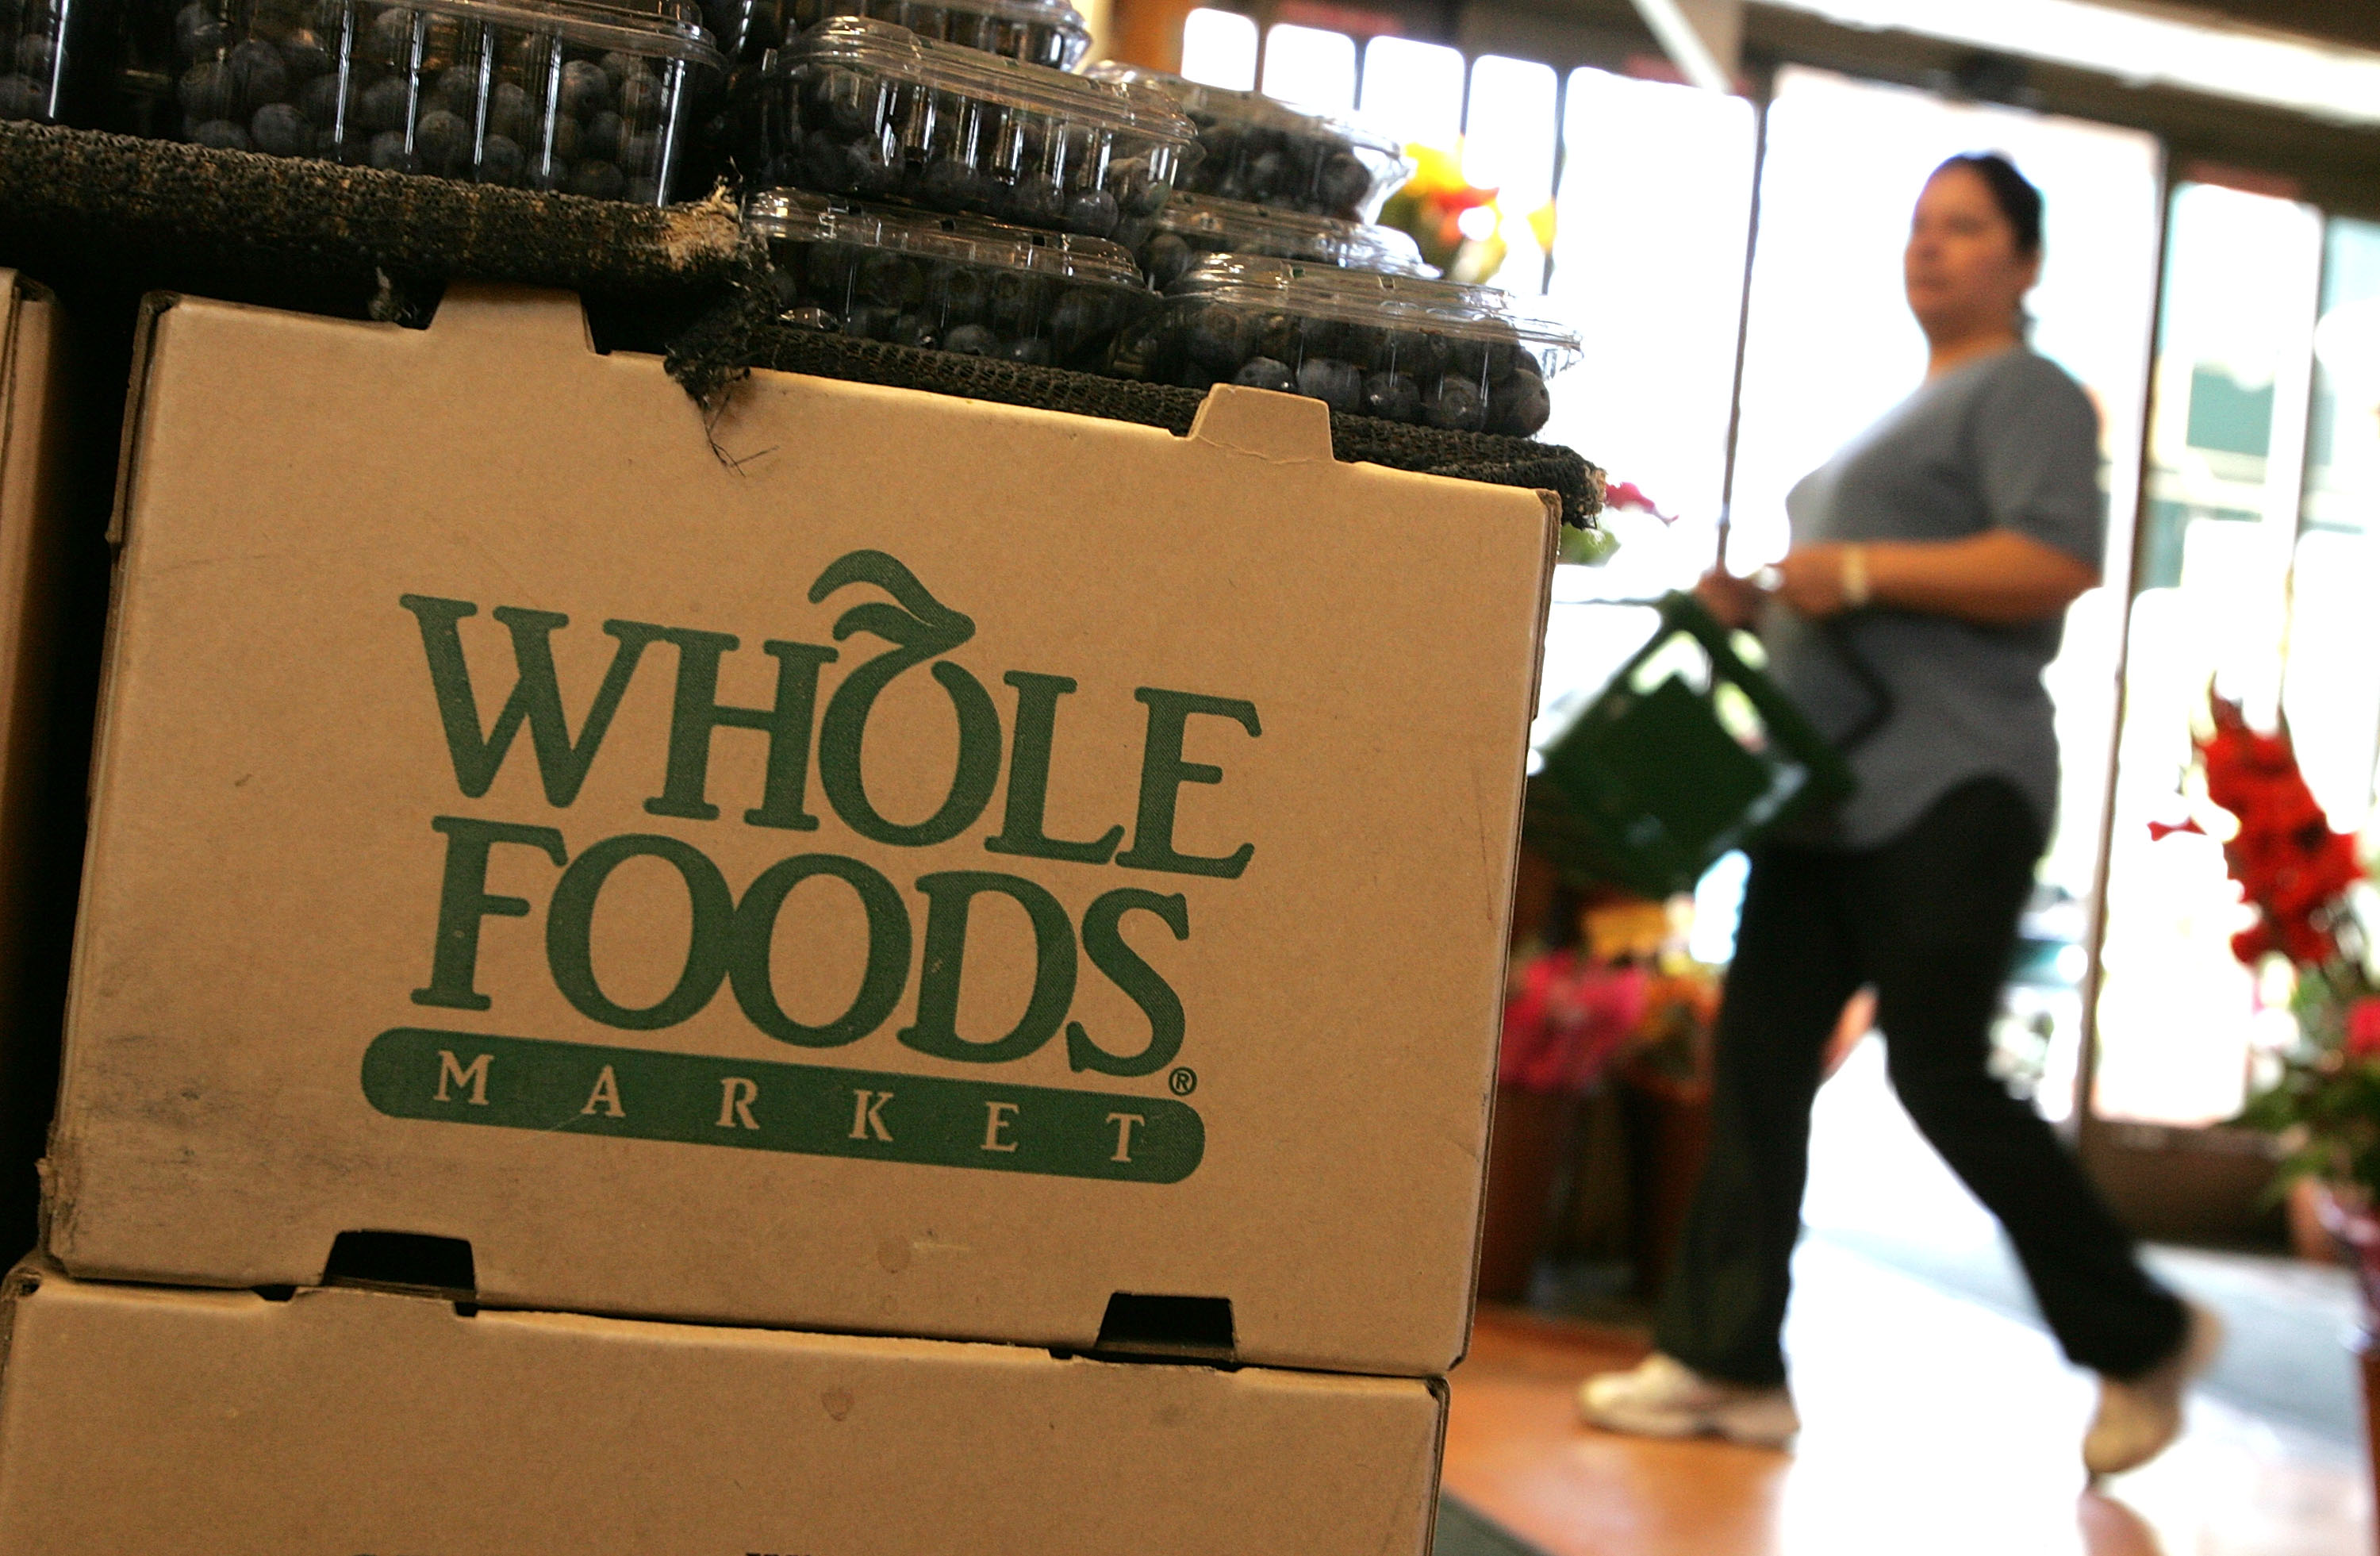 Whole Foods To Buy Wild Oats Markets For $565 Million